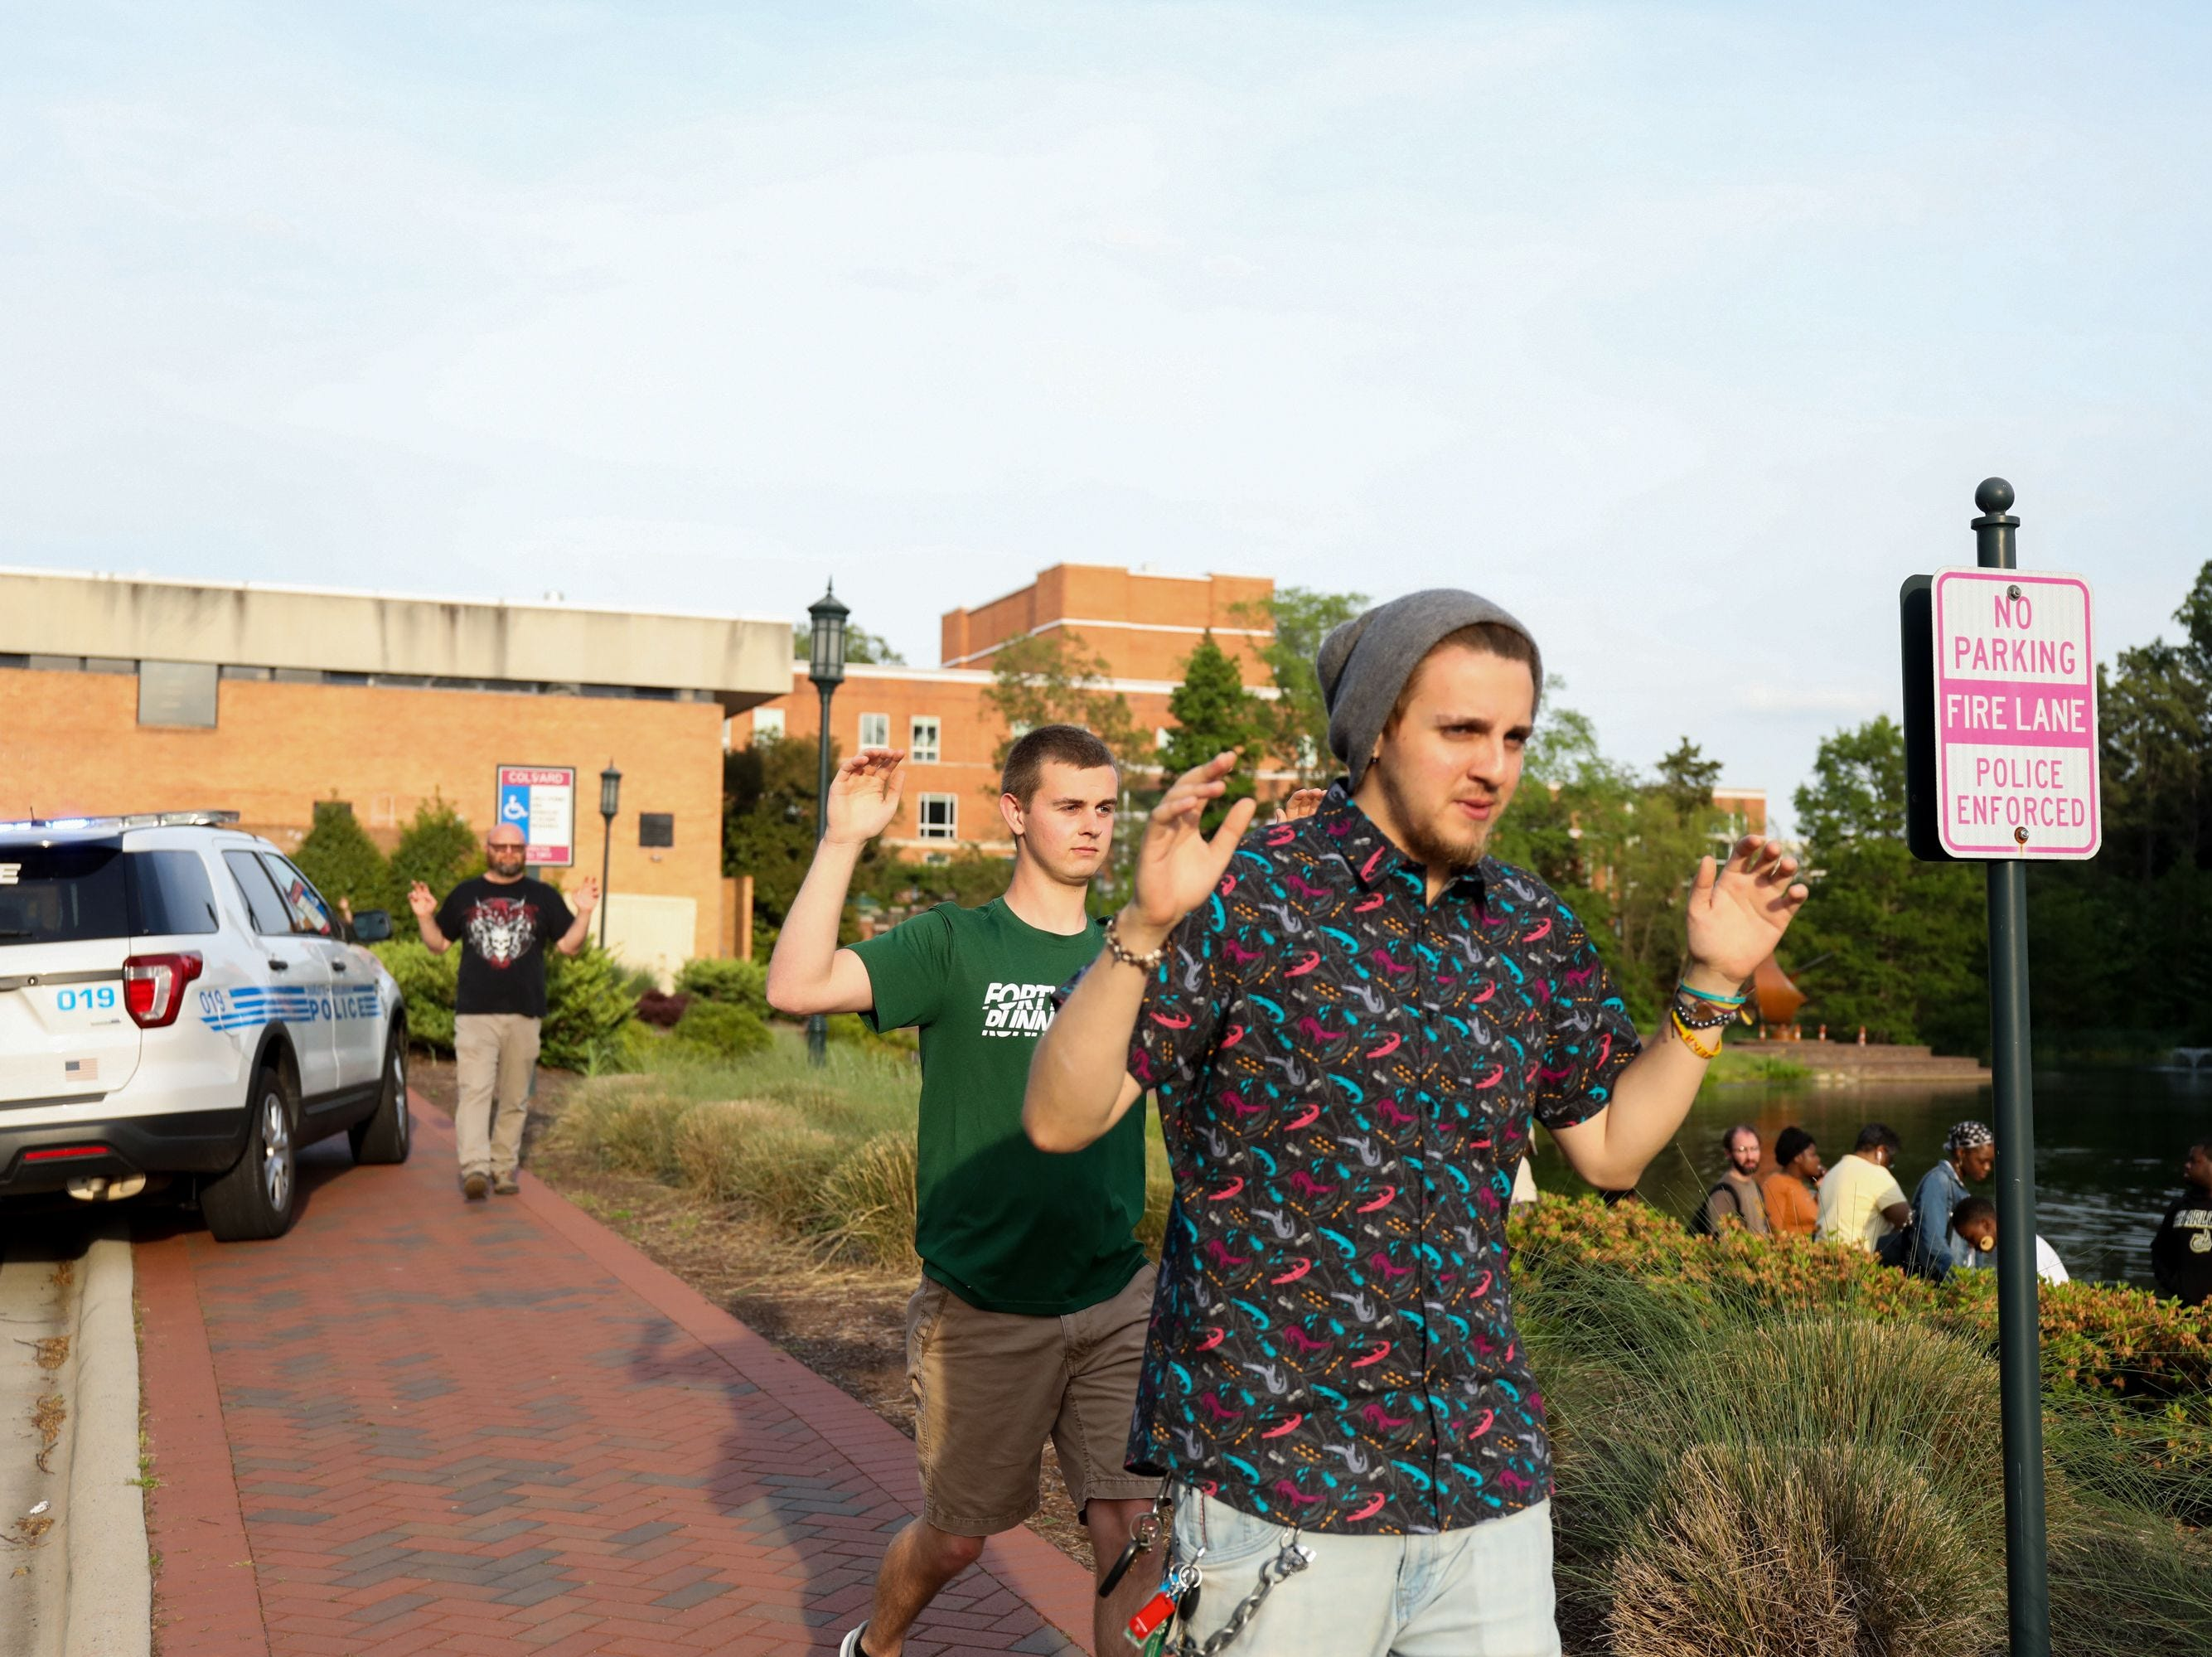 Students and faculty file out of buildings with their hands up during a lockdown after a shooting on the campus of University of North Carolina Charlotte in University City, Charlotte, on April 30, 2019. - Six people were shot, two of them died on the University of North Carolina Charlotte campus. One person was taken into custody, according to police sources.